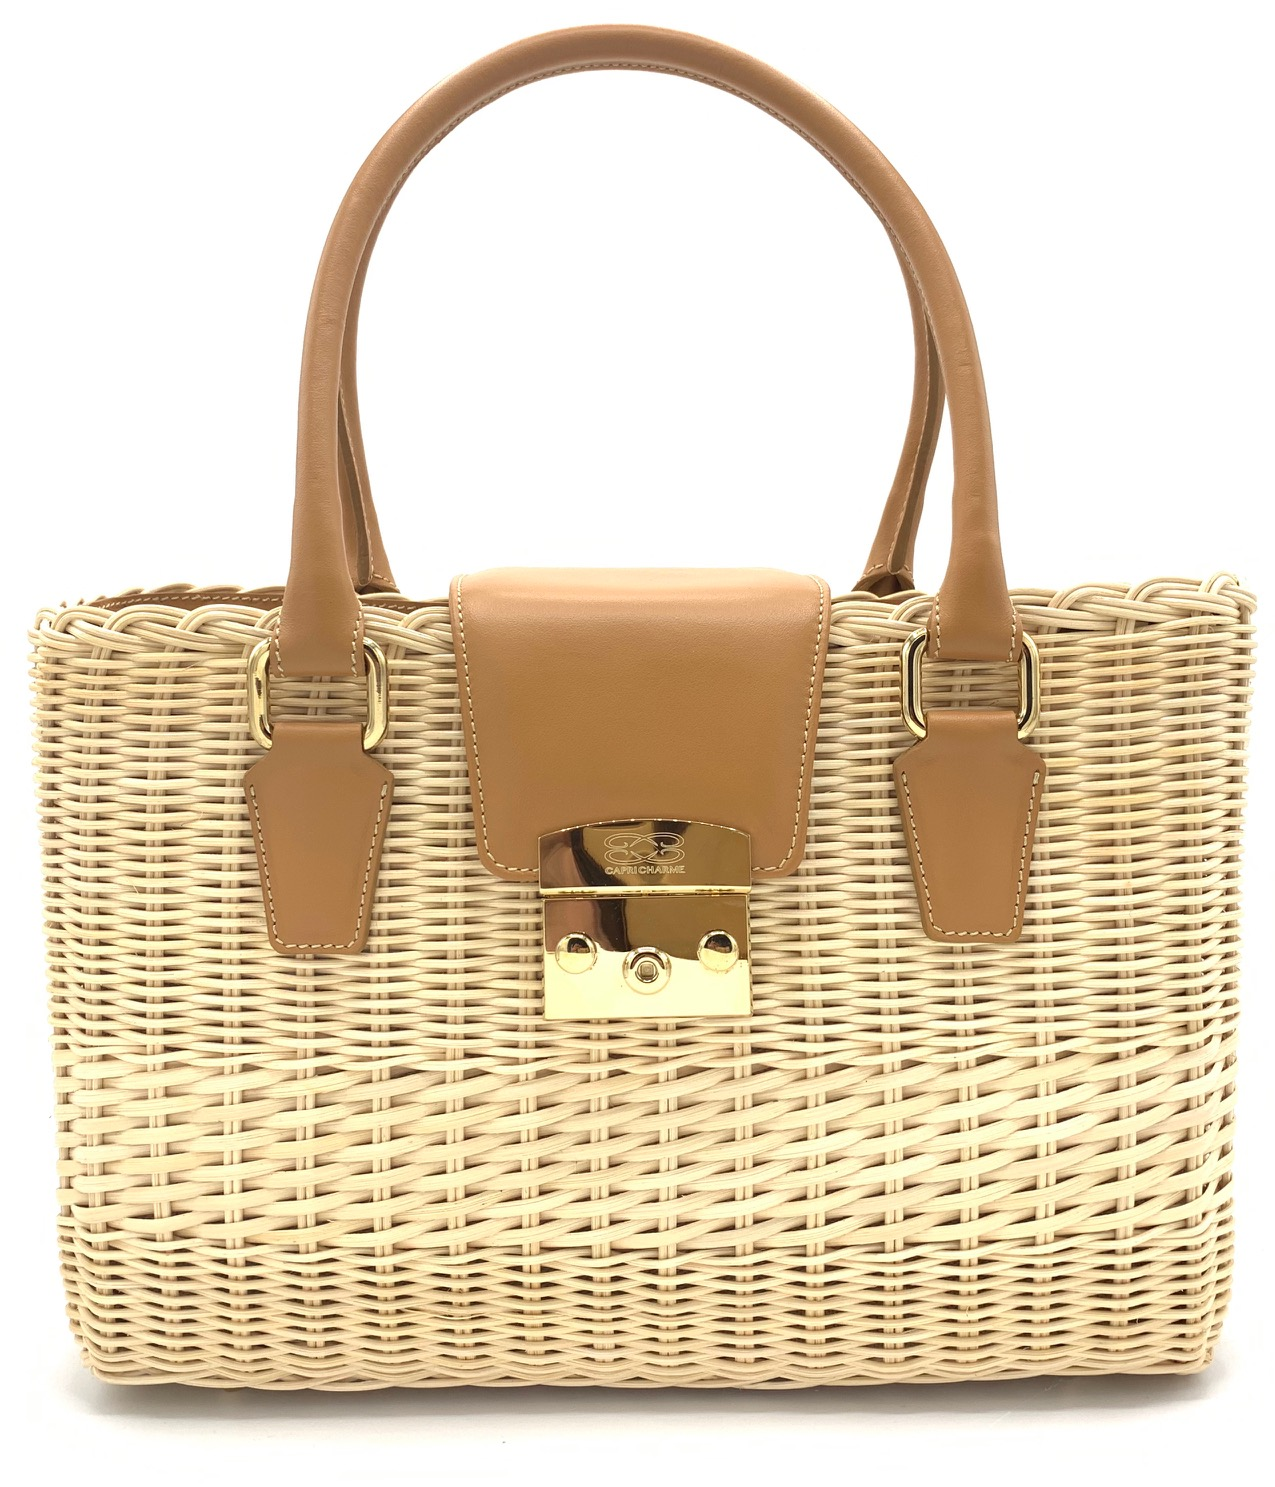 Saint Barth tote bag in natural wicker/toffee